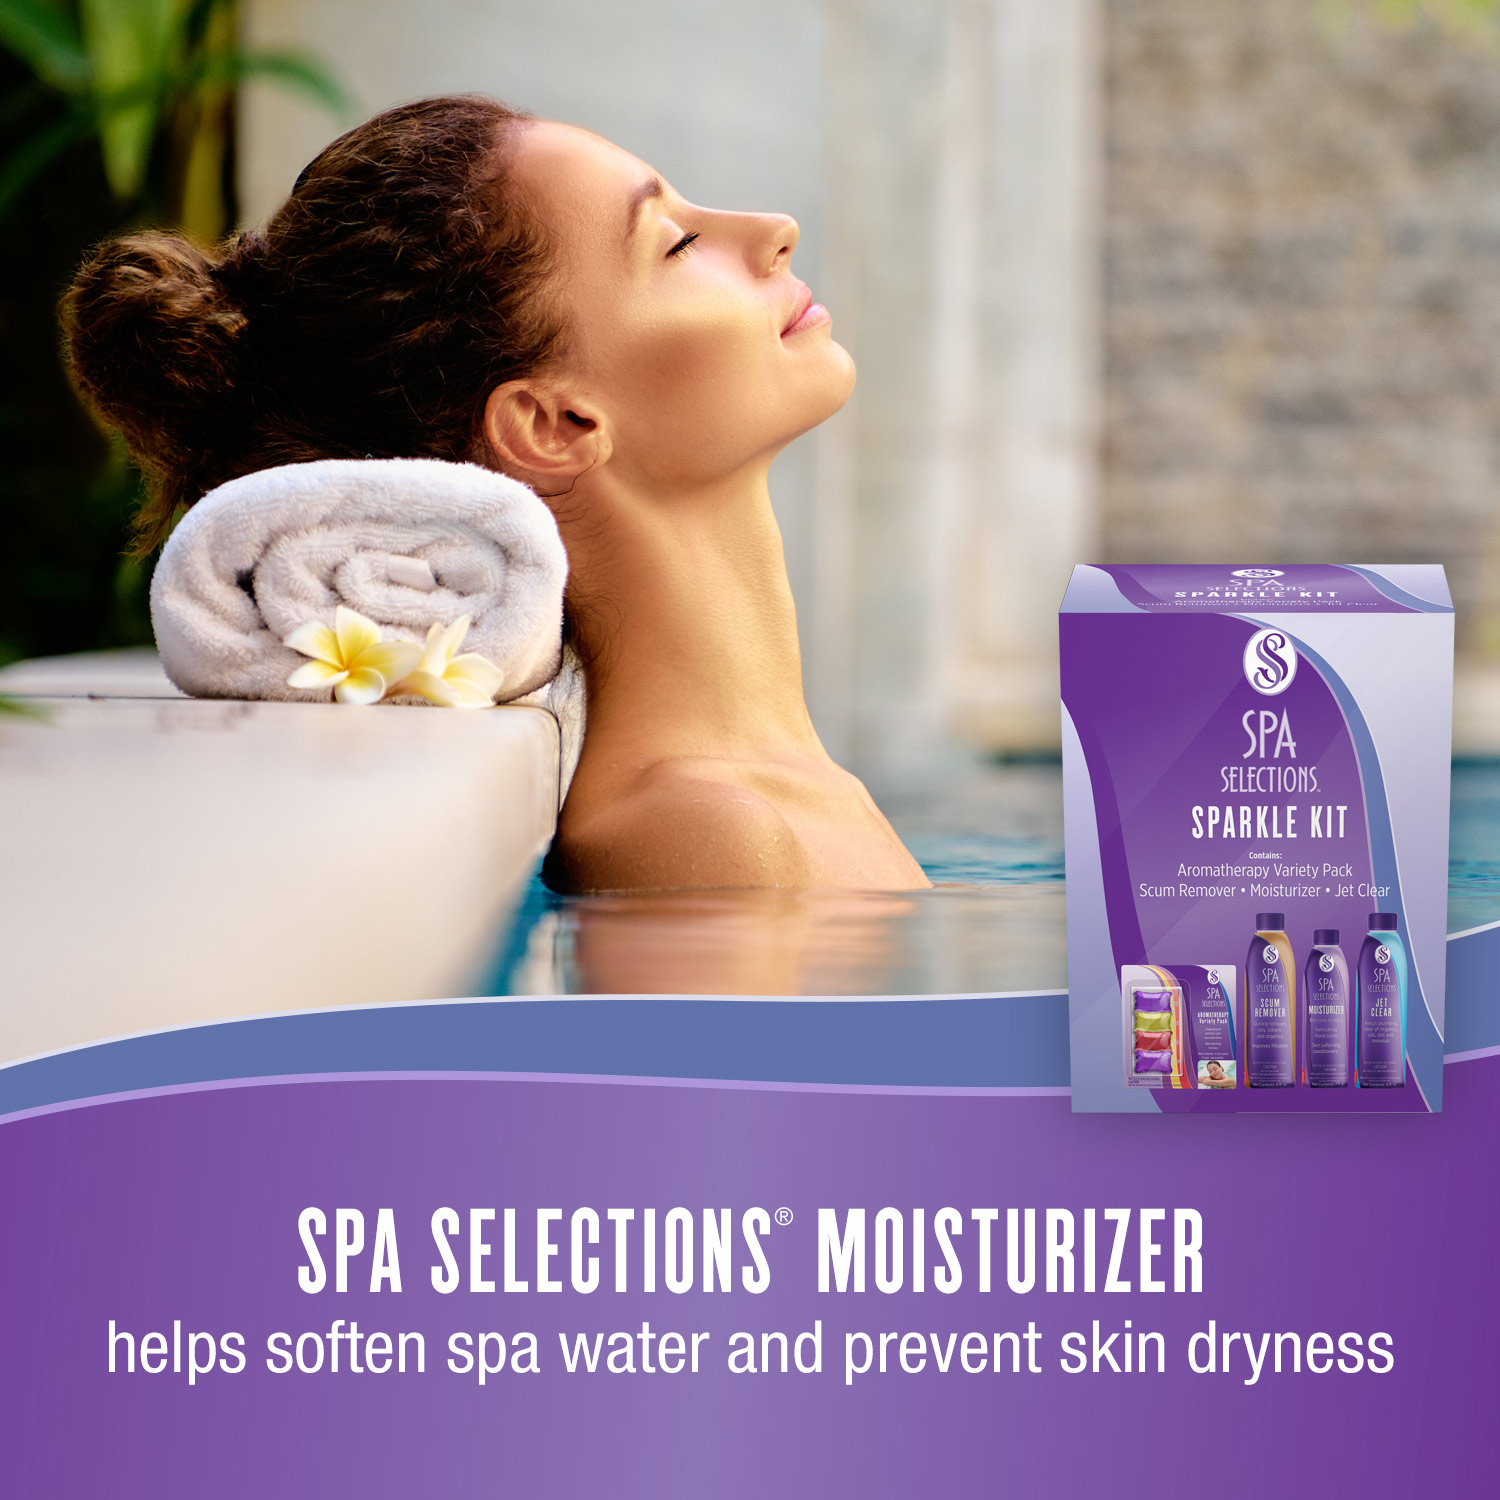 Spa Selections Moisturizer helps soften spa water and prevent skin dryness. Photo of woman relaxing in a spa.